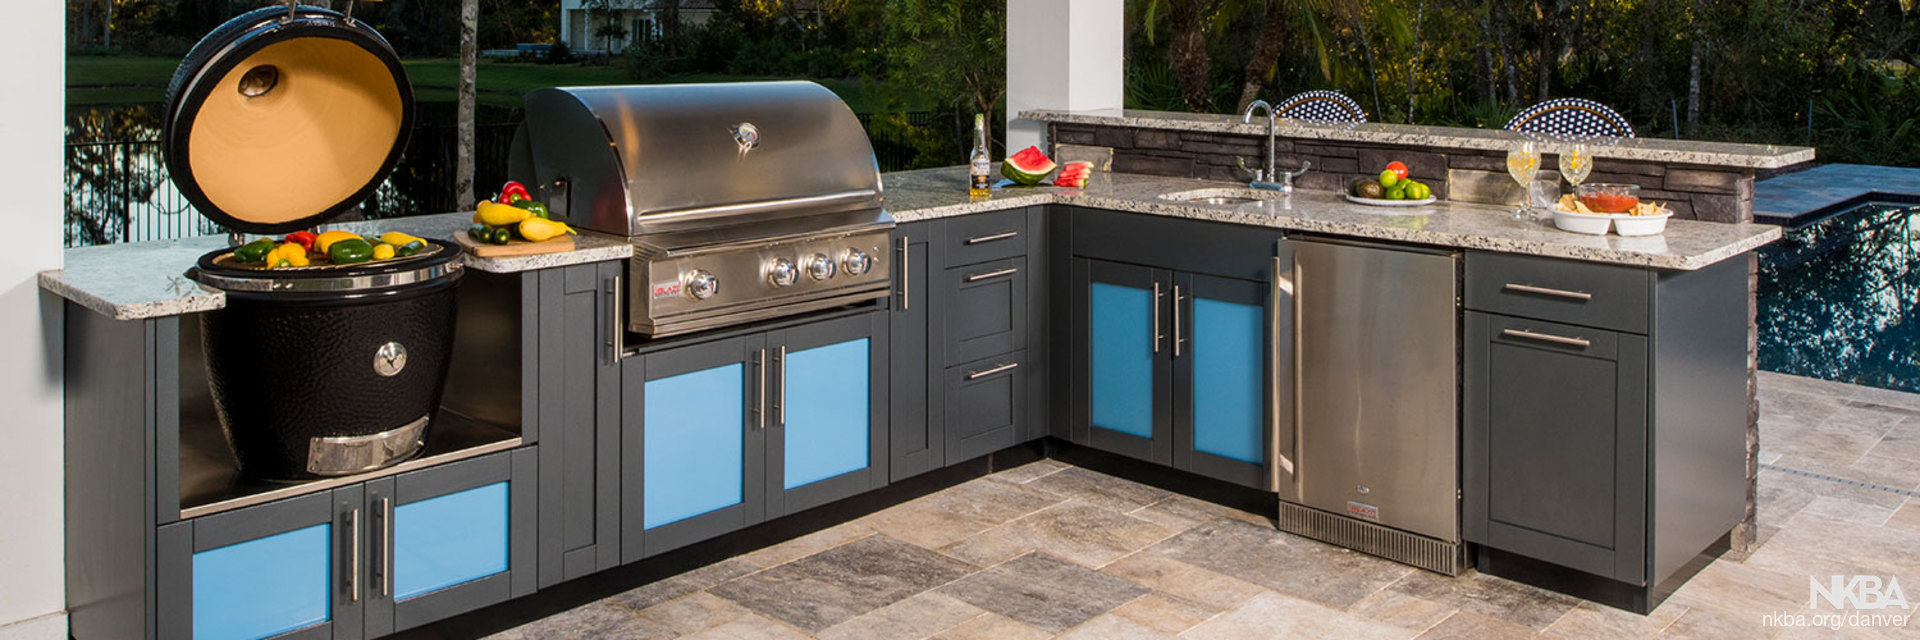 Danver Stainless Outdoor Kitchens Nkba